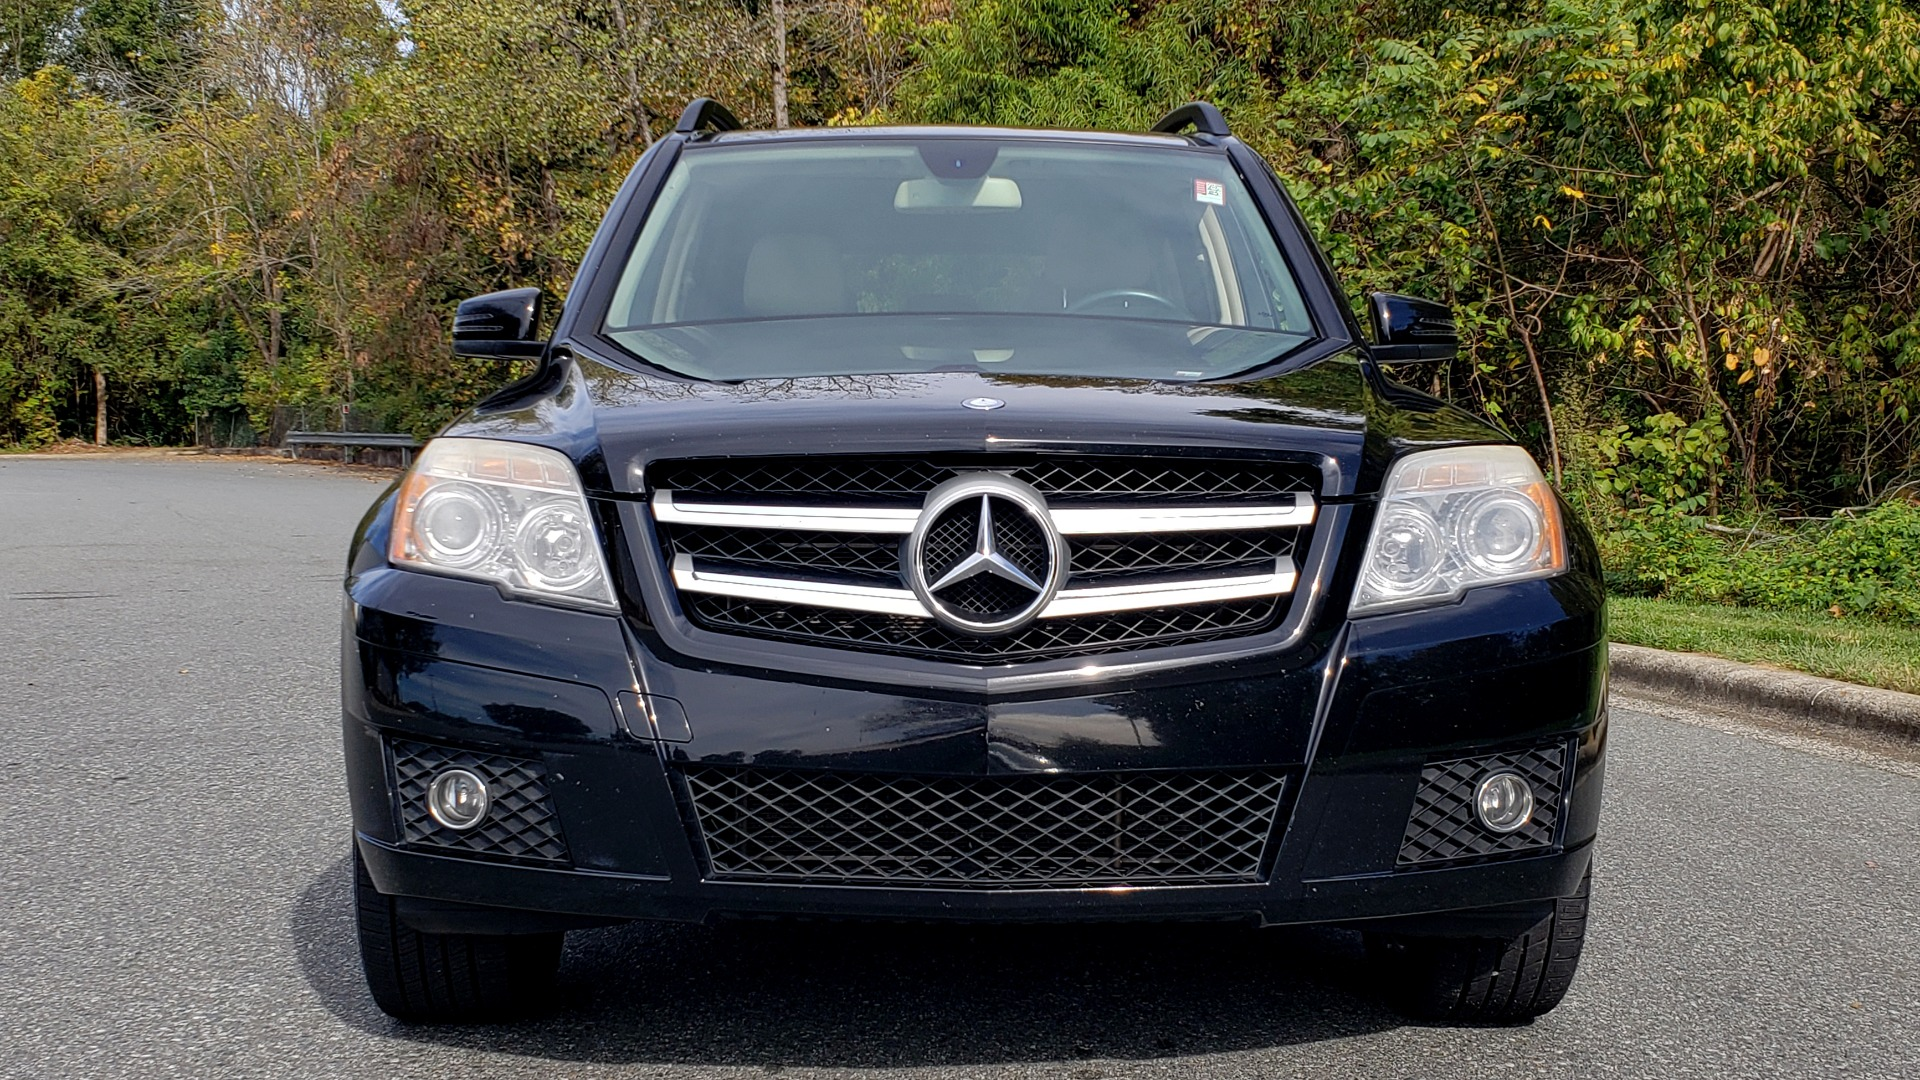 Used 2012 Mercedes-Benz GLK-CLASS GLK 350 4MATIC / PREM PKG / SUNROOF / KEYLESS-GO / NAV / REARVIEW for sale Sold at Formula Imports in Charlotte NC 28227 22